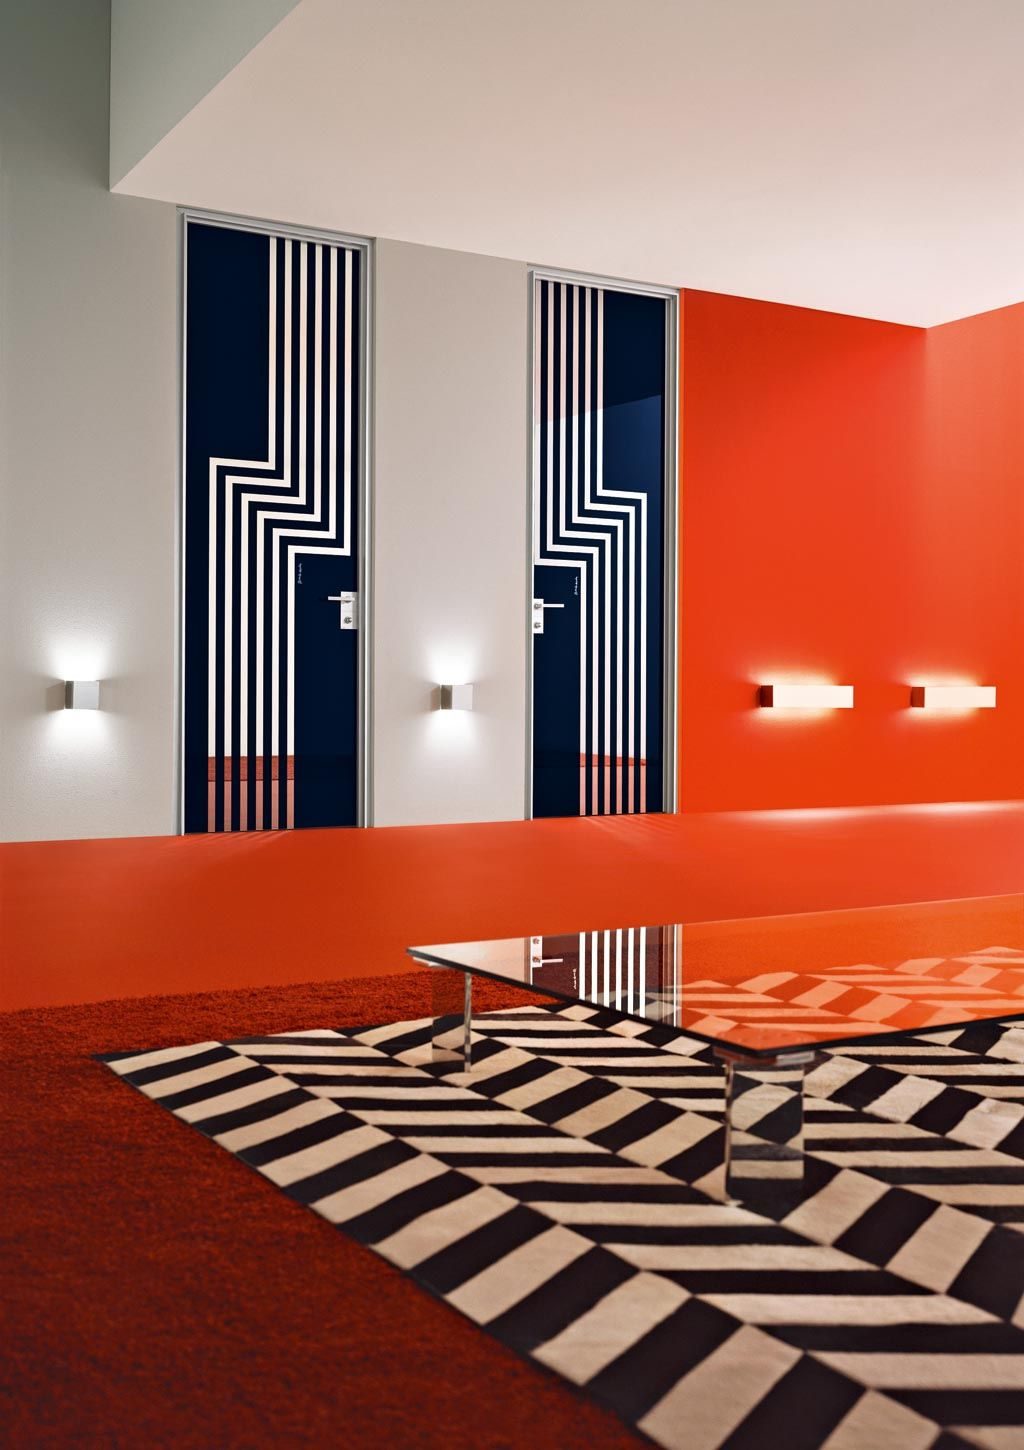 Alessandro mendini is one of the most important figures of for Neo art deco interior design